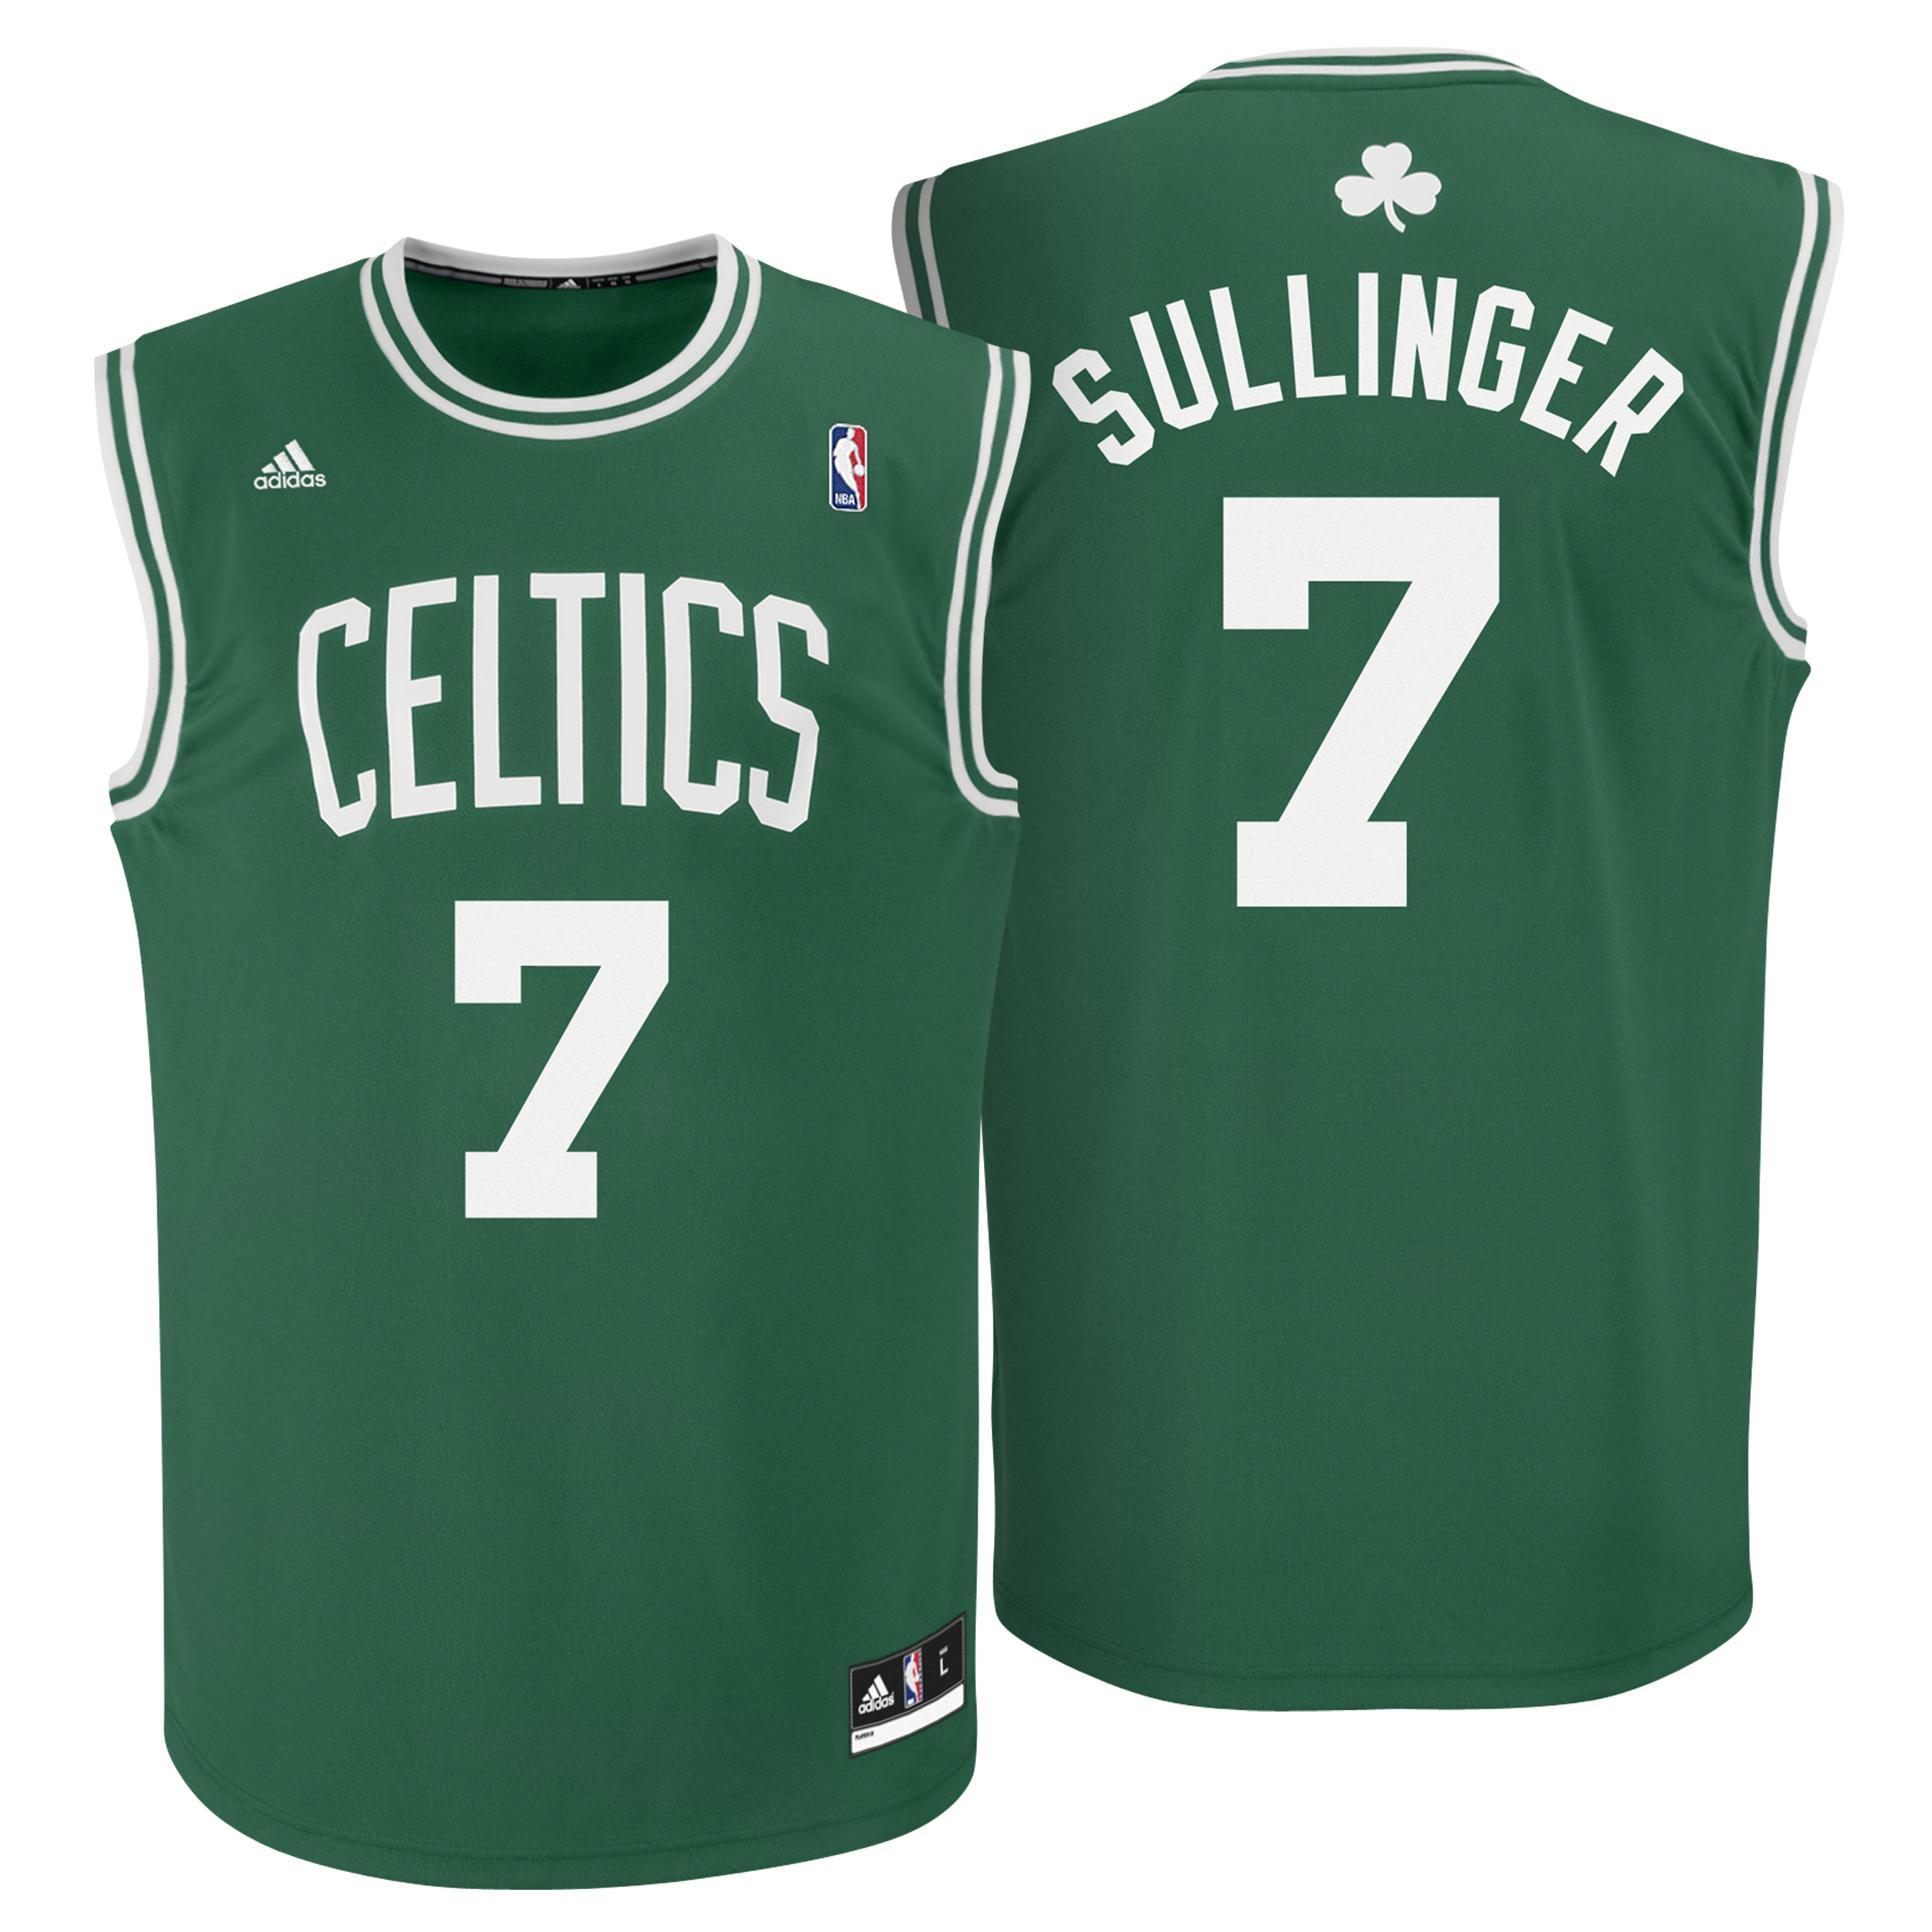 Boston Celtics Road Replica Jersey - Jared Sullinger - Mens